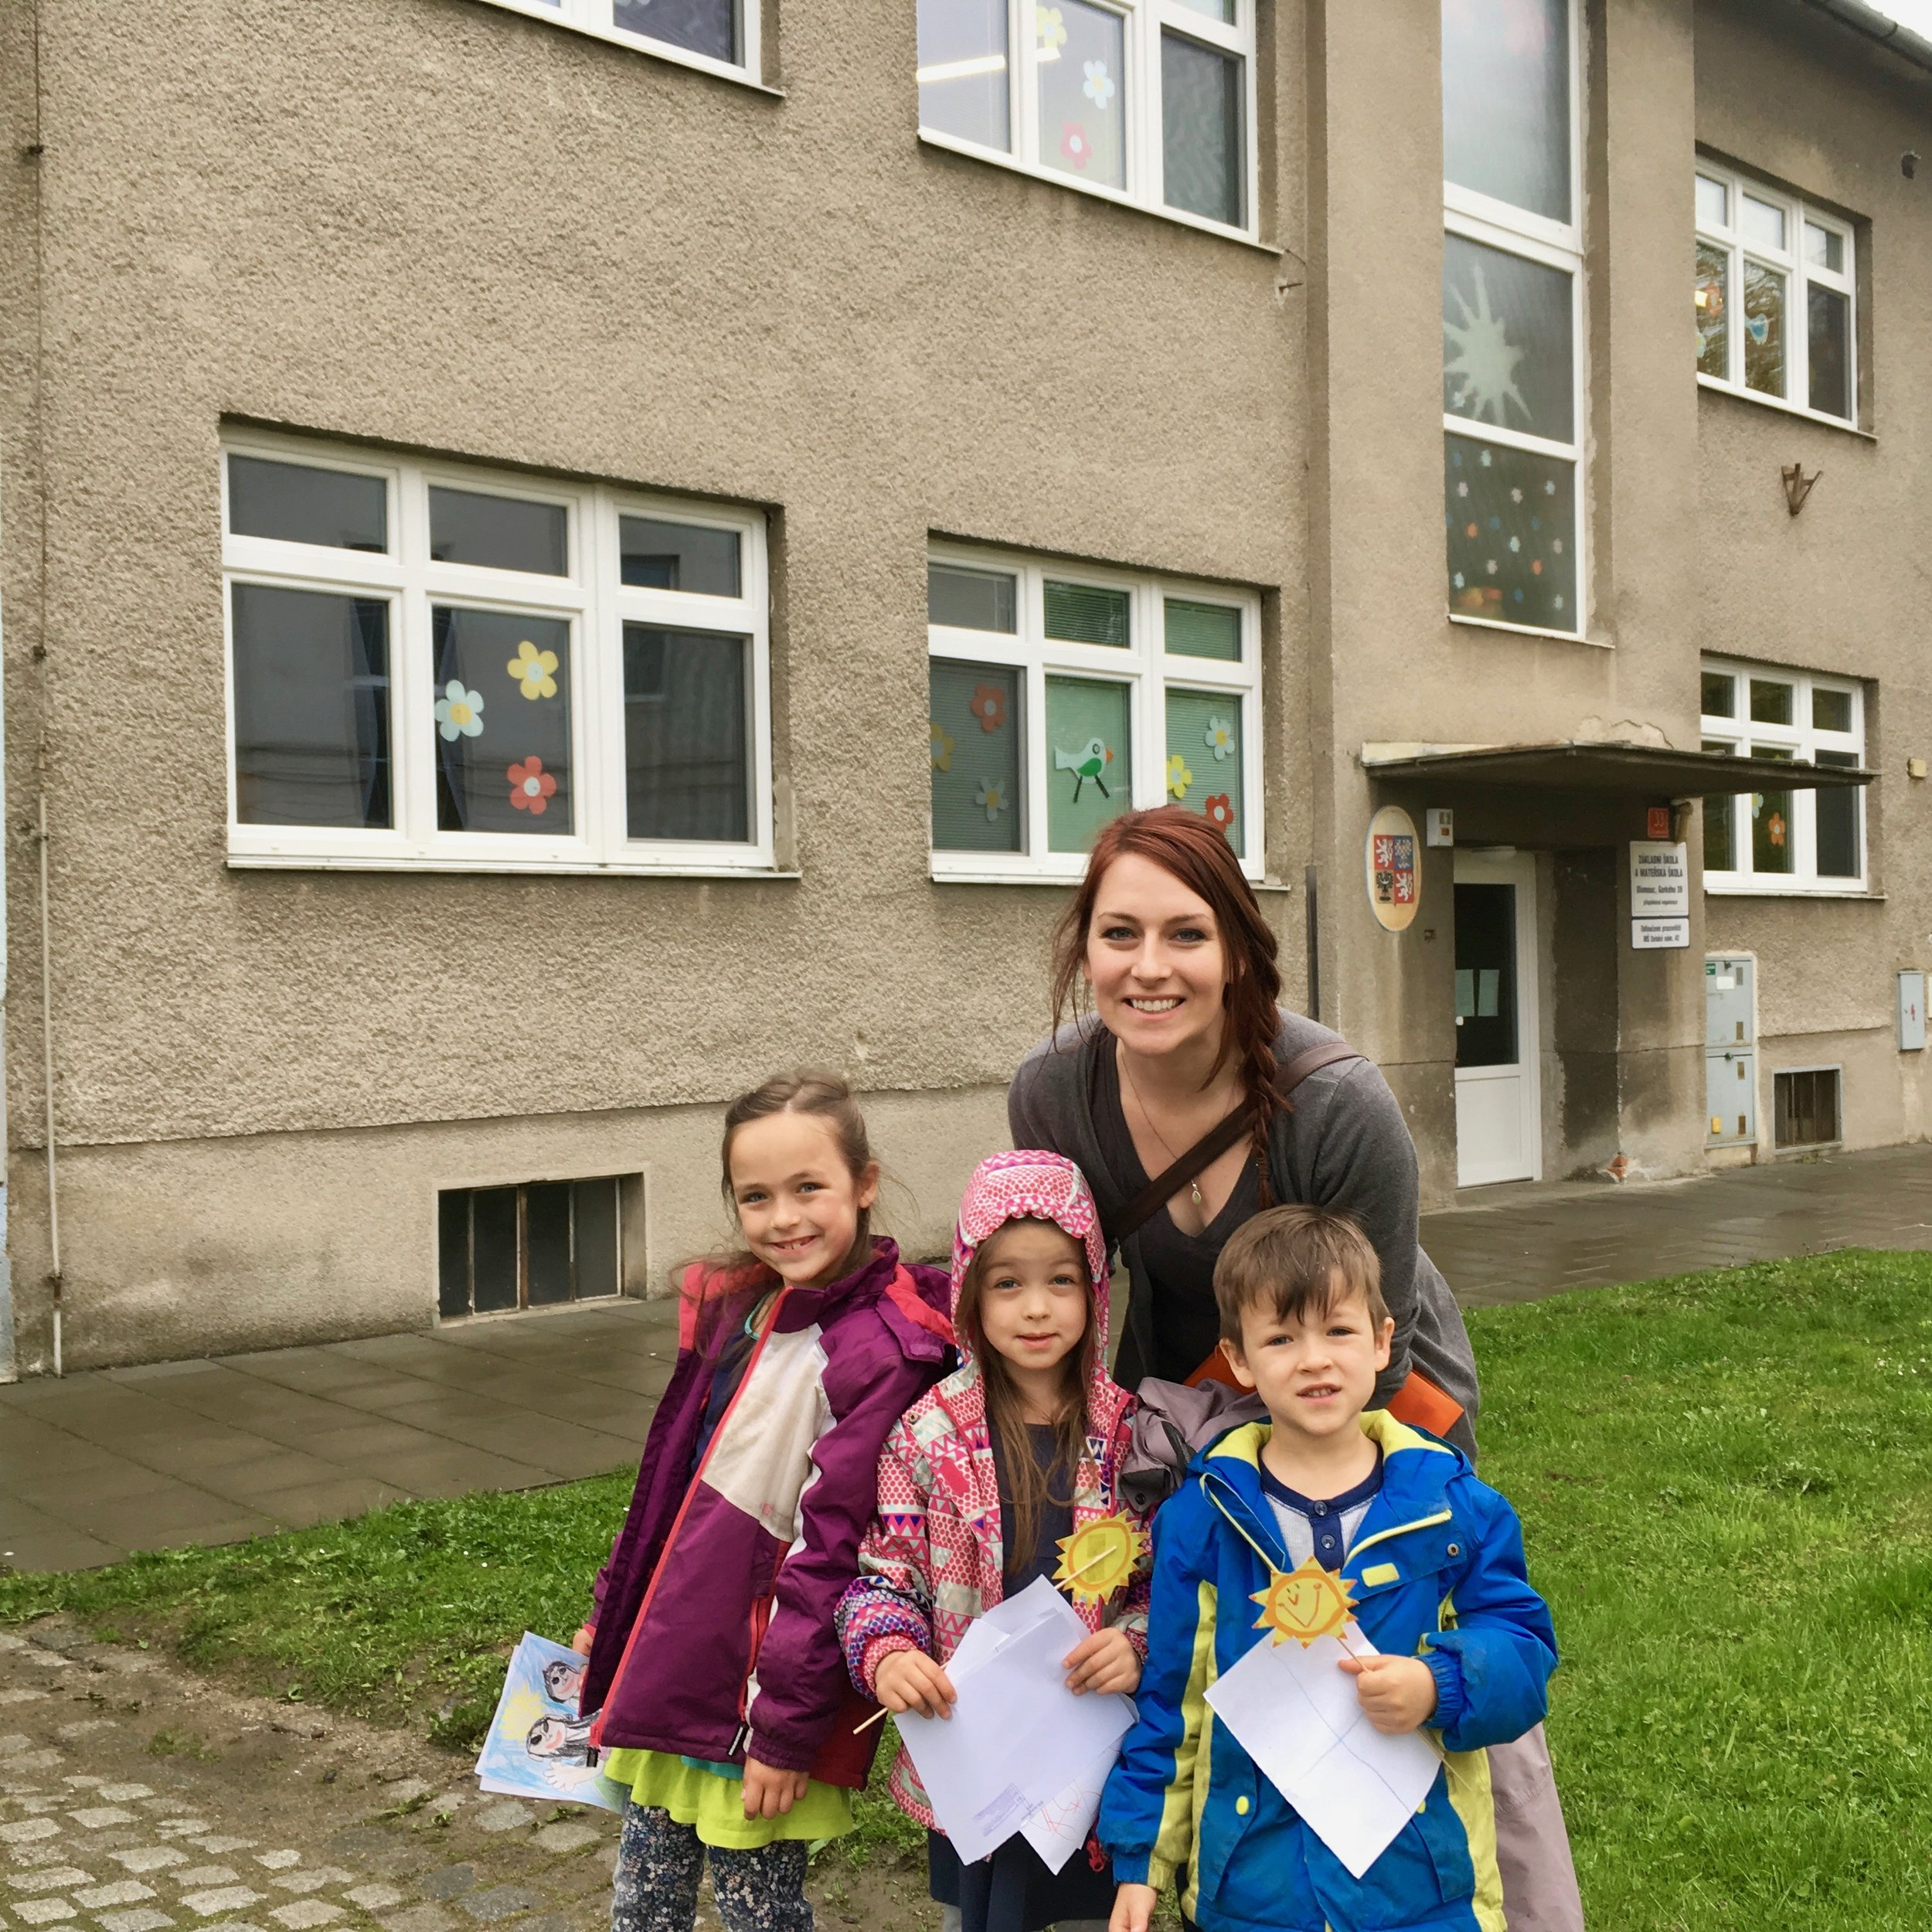 All of the kids have been accepted into their new Czech Schools! We've had dreams of homeschooling them, but those are being put on the back burner for the time being, as we've come to the point where we see the most healthy situation for them being in the public school system, where they will learn the language, culture, and overall find their home here easier than they would everyday in a purely English environment. They will be given a Czech tutor to help them with their language development as well (Praise God!).  One of the things we enjoy about Pioneers is the freedom to be flexible, and we will have opportunities in the future to revise our plans.